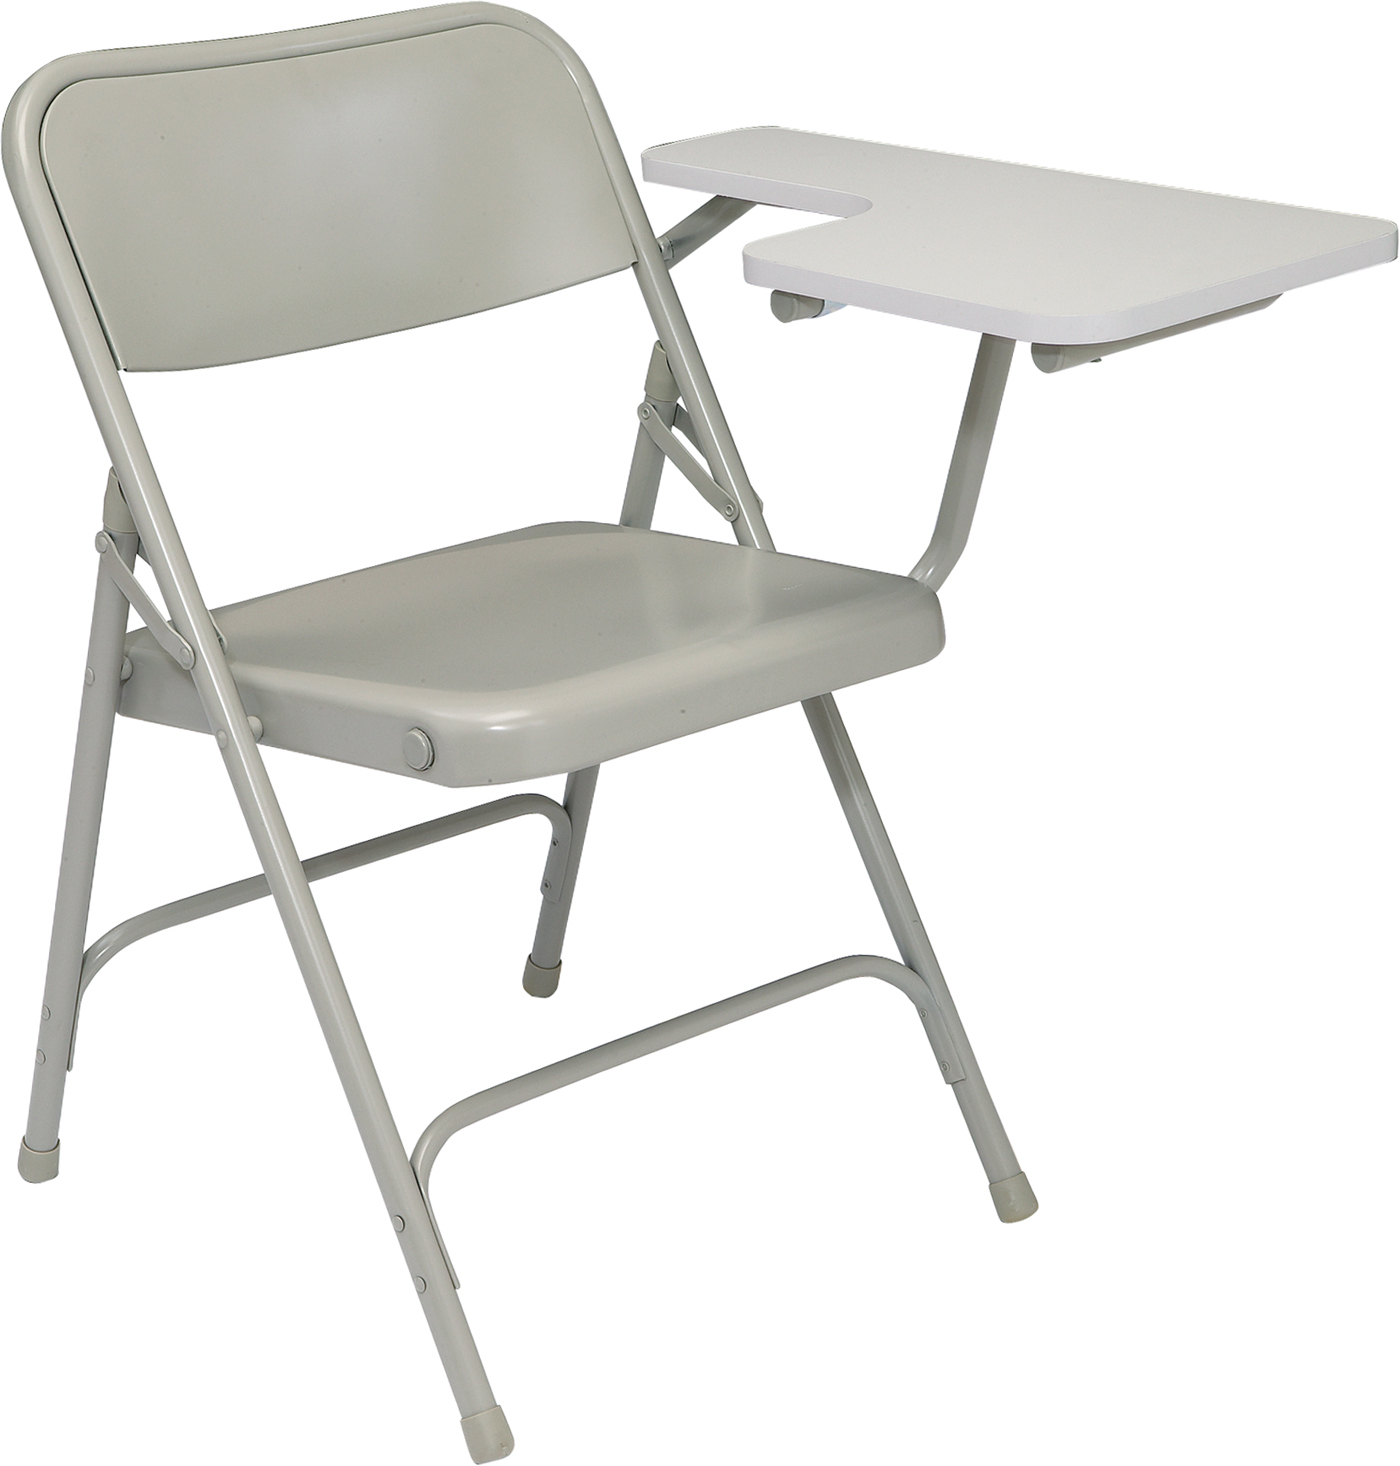 Steel Chair with Folding Tablet Arm in Kids Desks